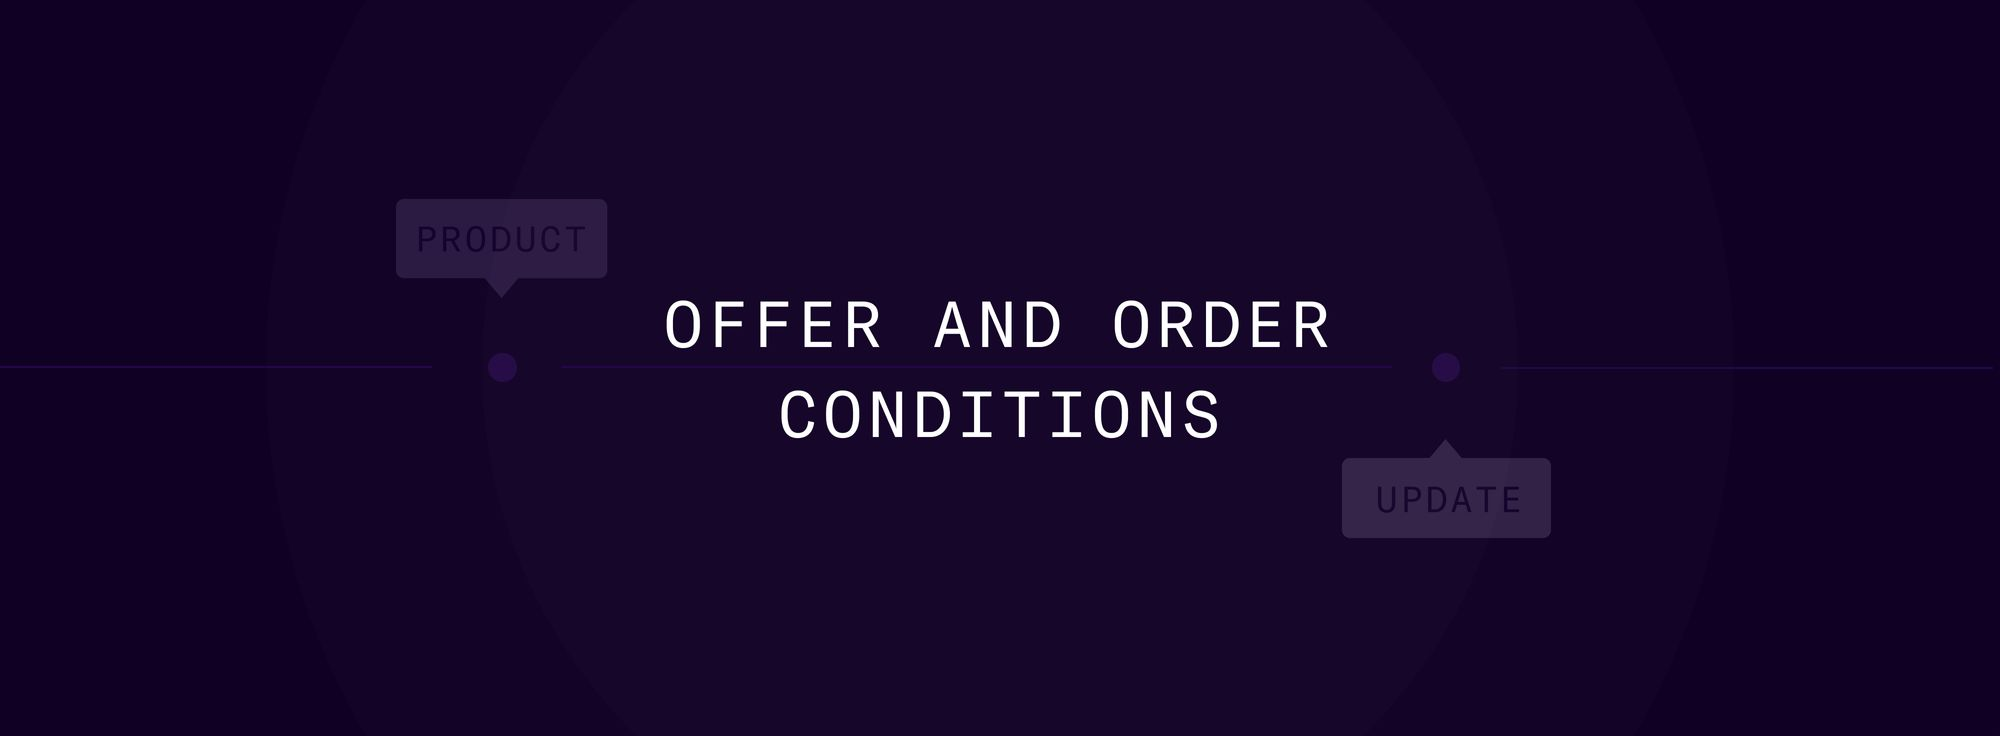 Offer and Order Conditions now live on Duffel